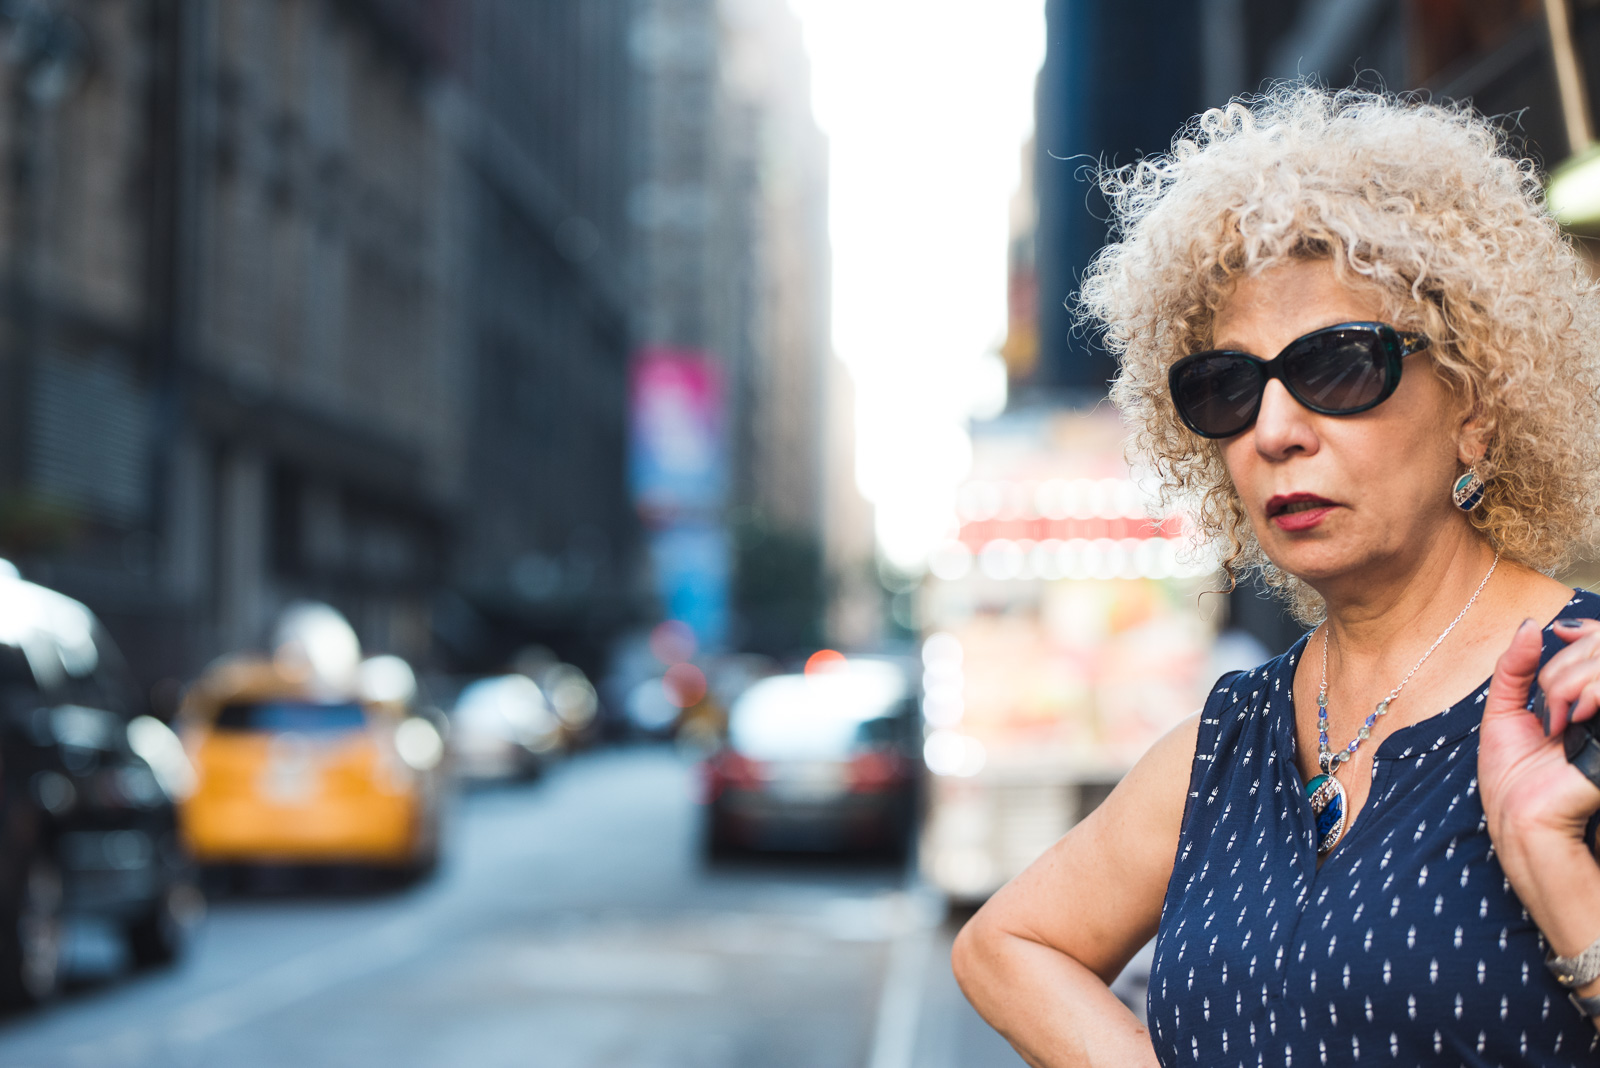 curly haired woman in a blue shirt standing by a busy street by Francesca Russell